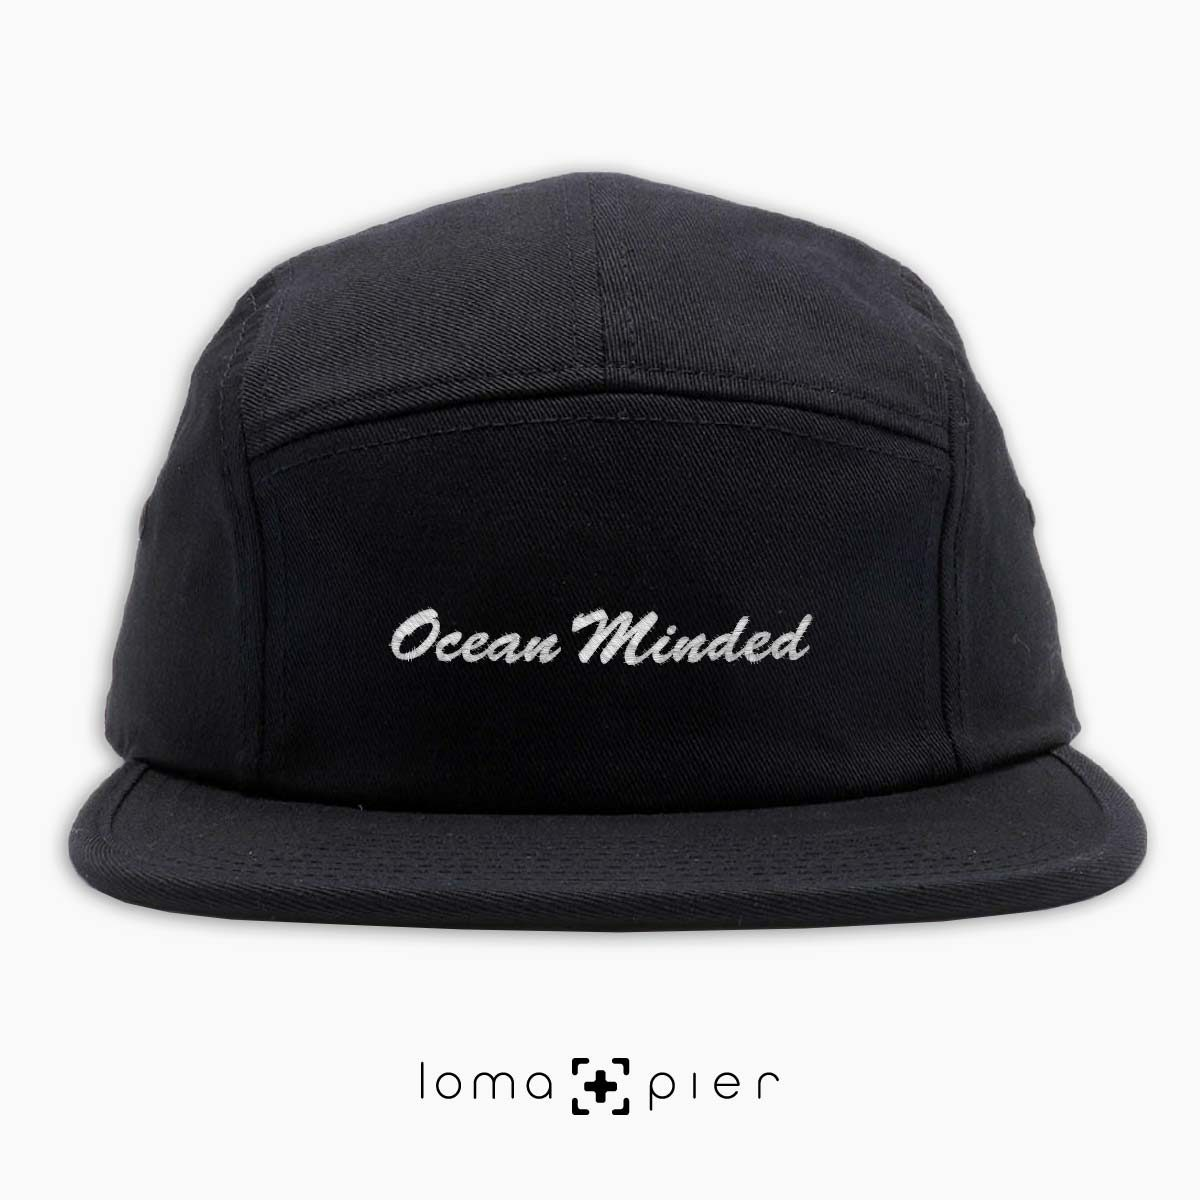 OCEAN MINDED embroidered on a black cotton 5-panel hat by loma+pier hat store